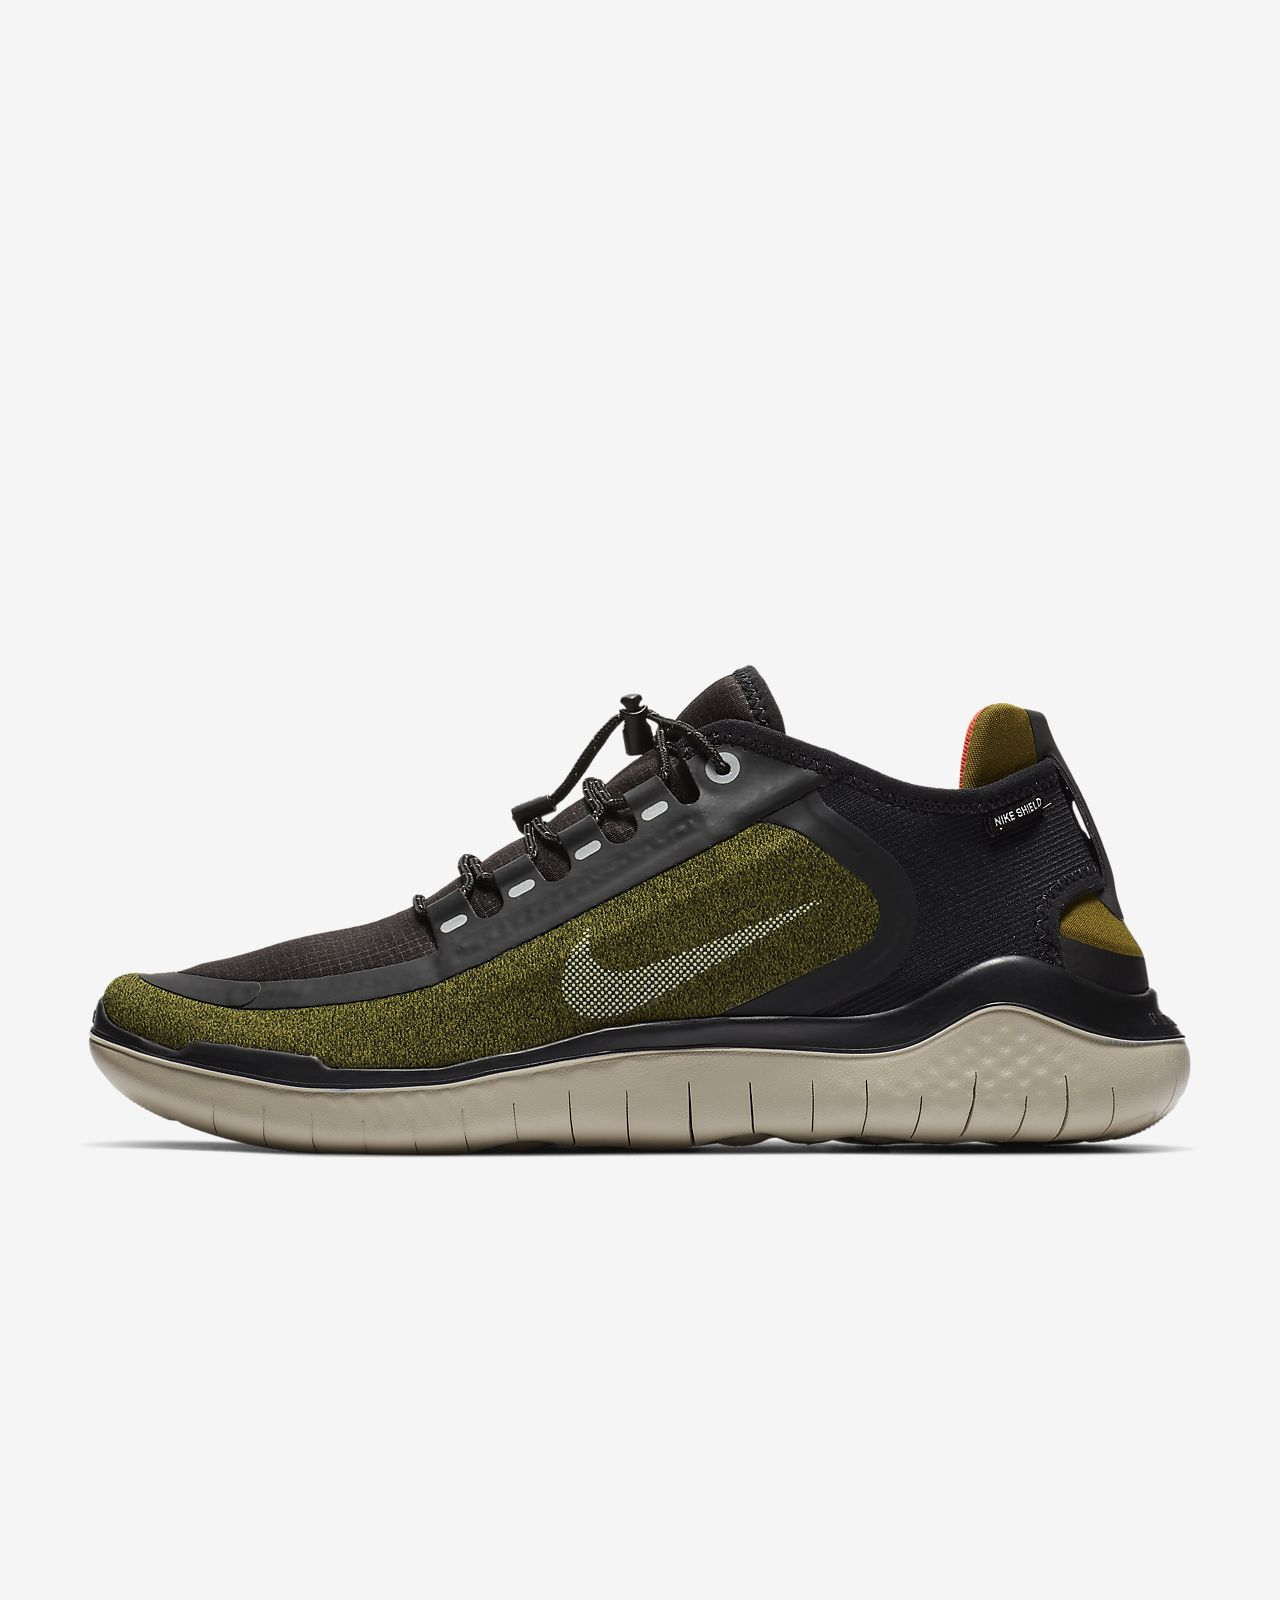 check out c291f 3d578 ... coupon for nike free rn 2018 shield mens running shoe 4c441 306d5